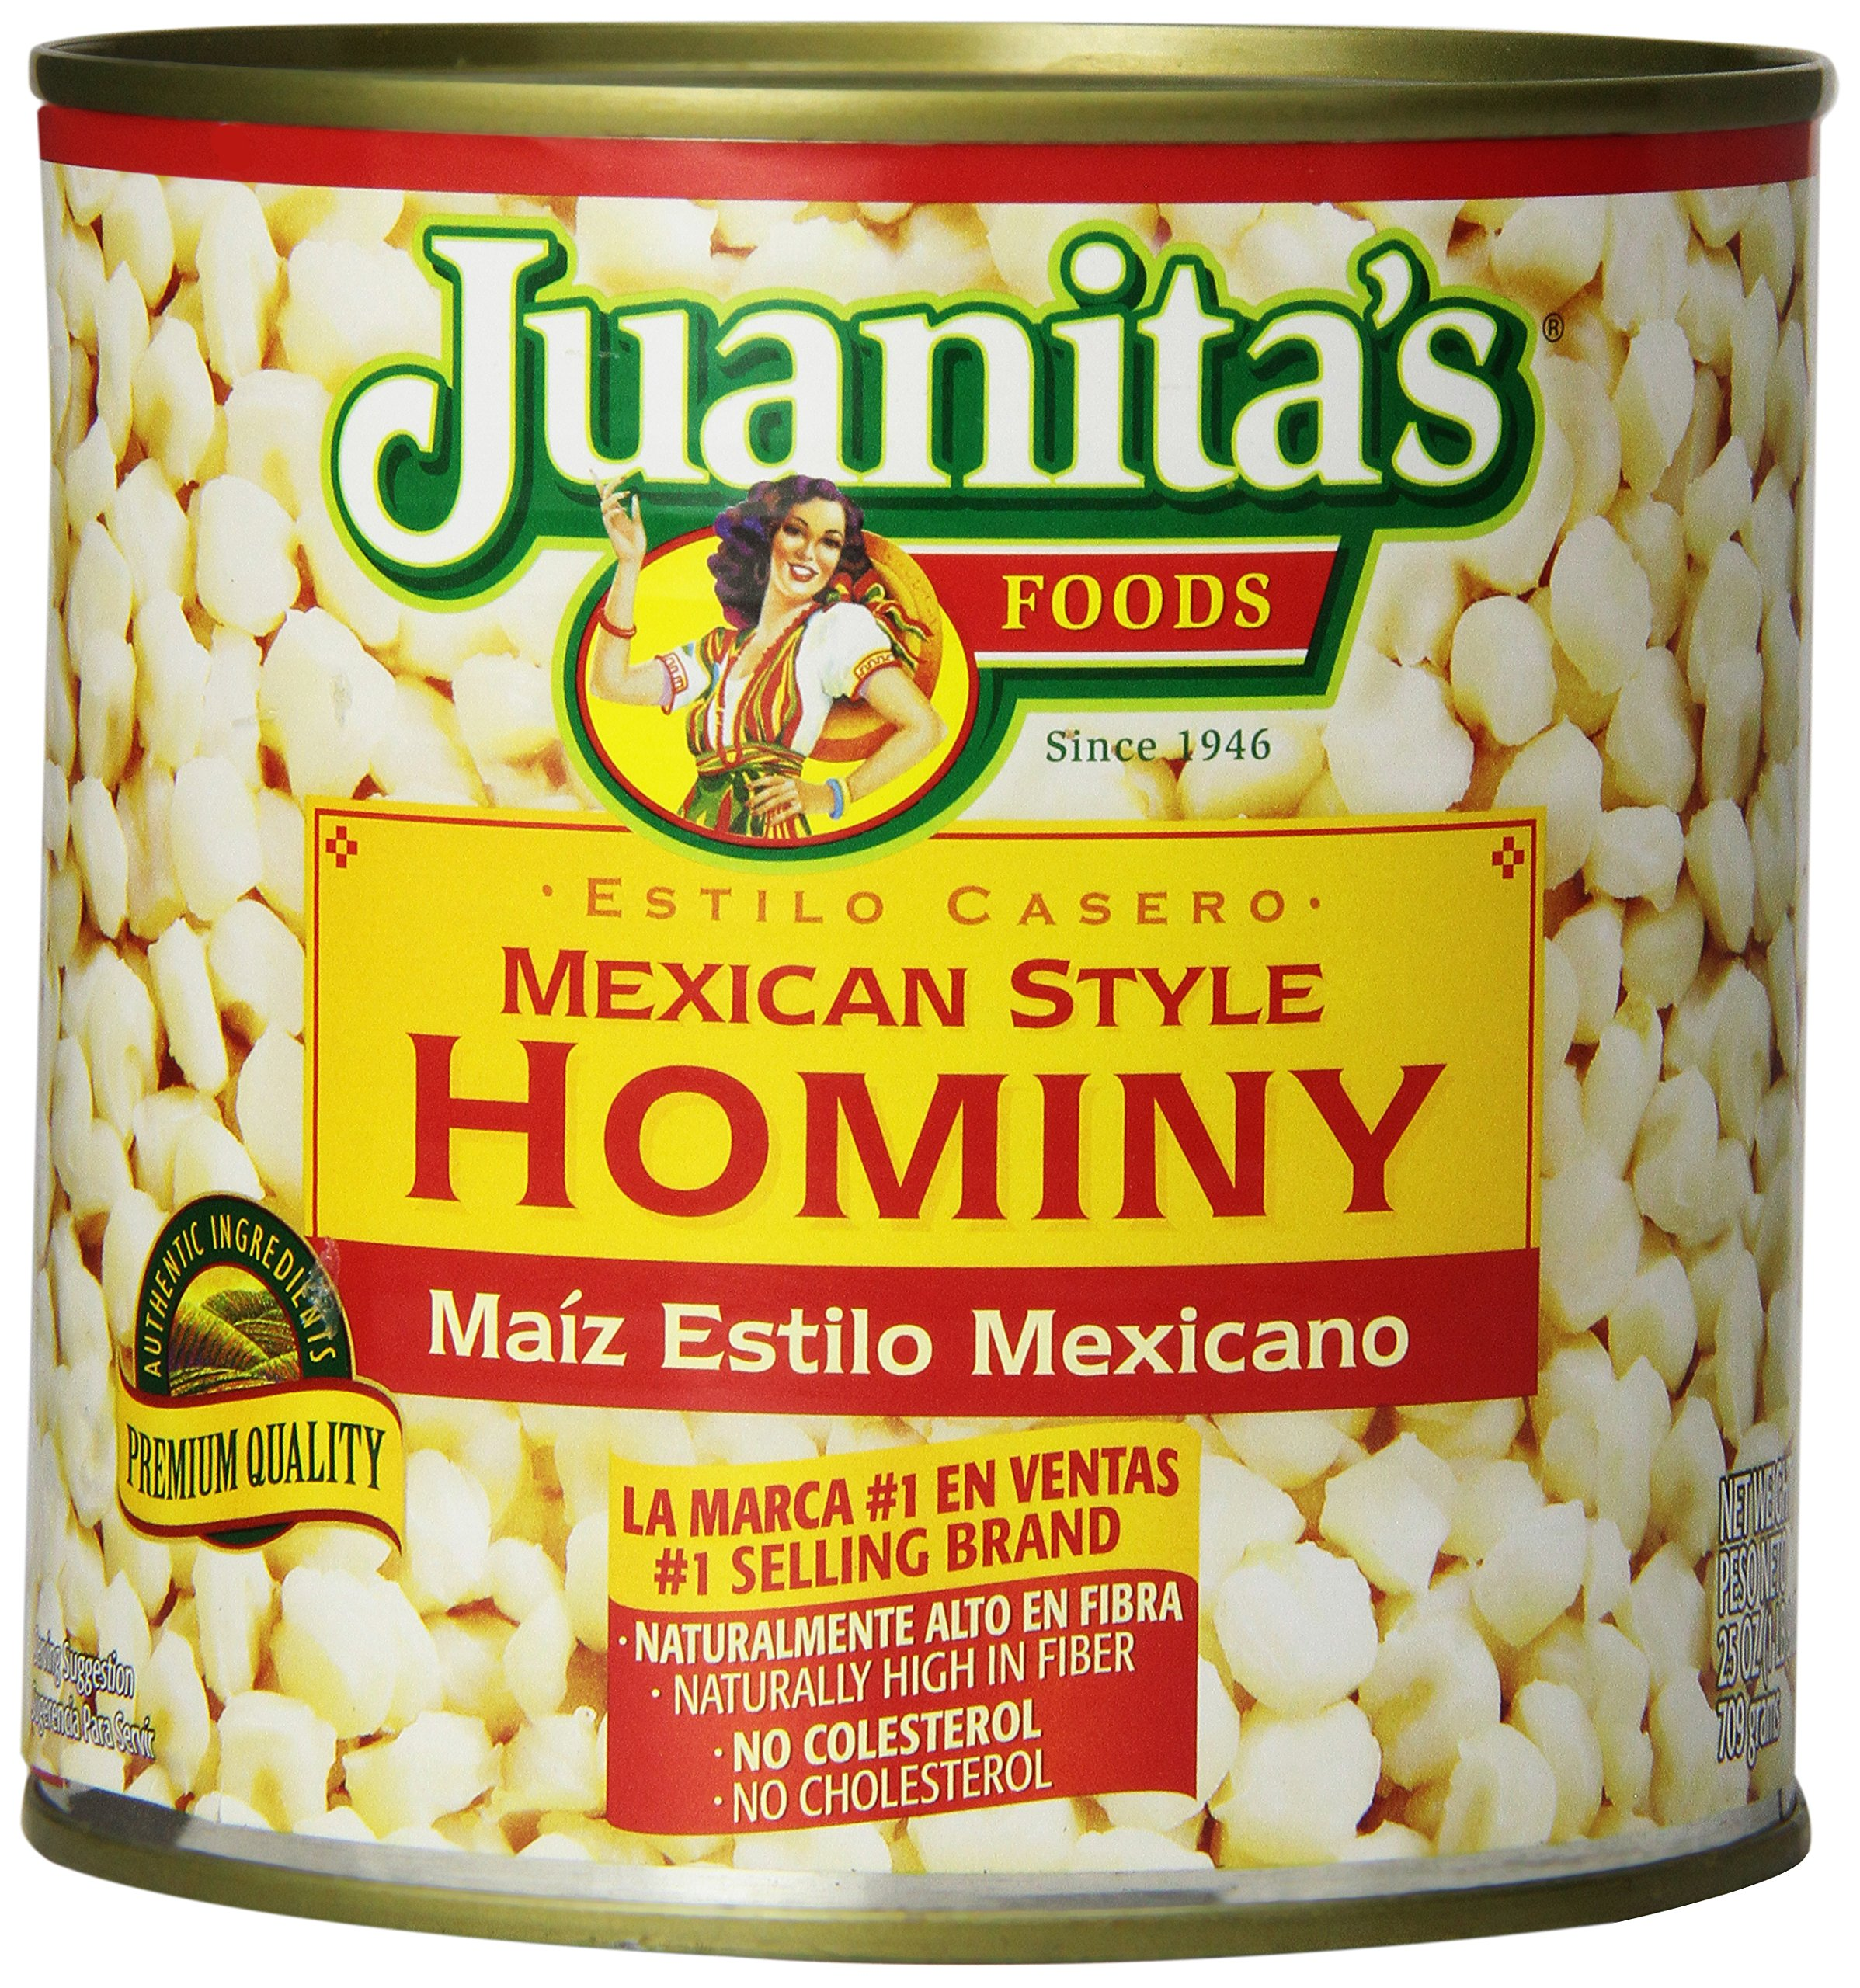 Juanitas Hominy Mexican Style, 25 oz (packaging may vary)